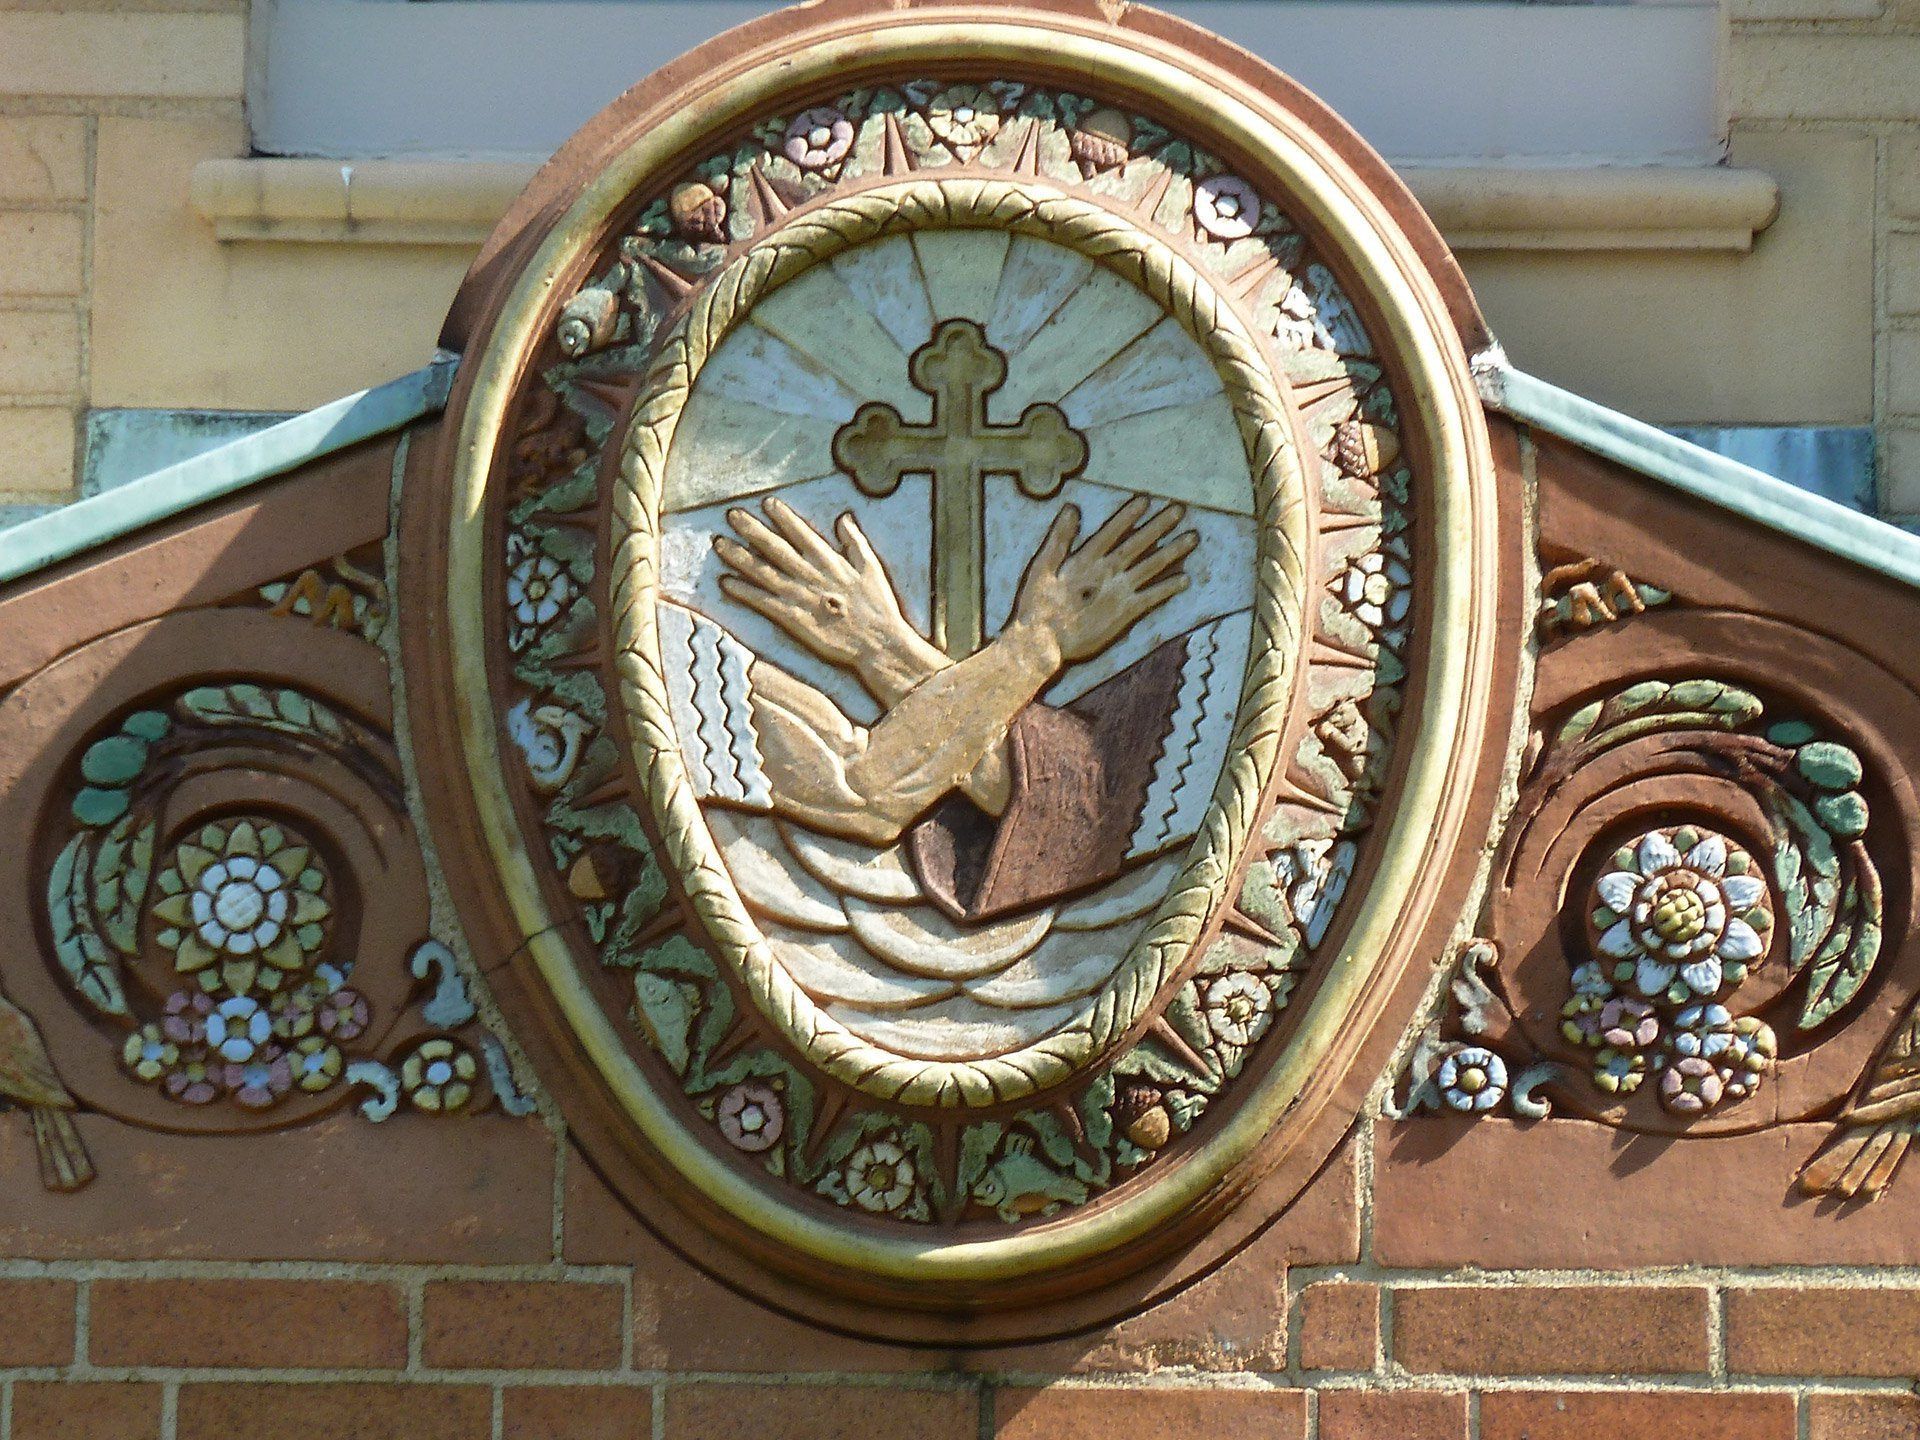 Emblem of the Franciscan Order